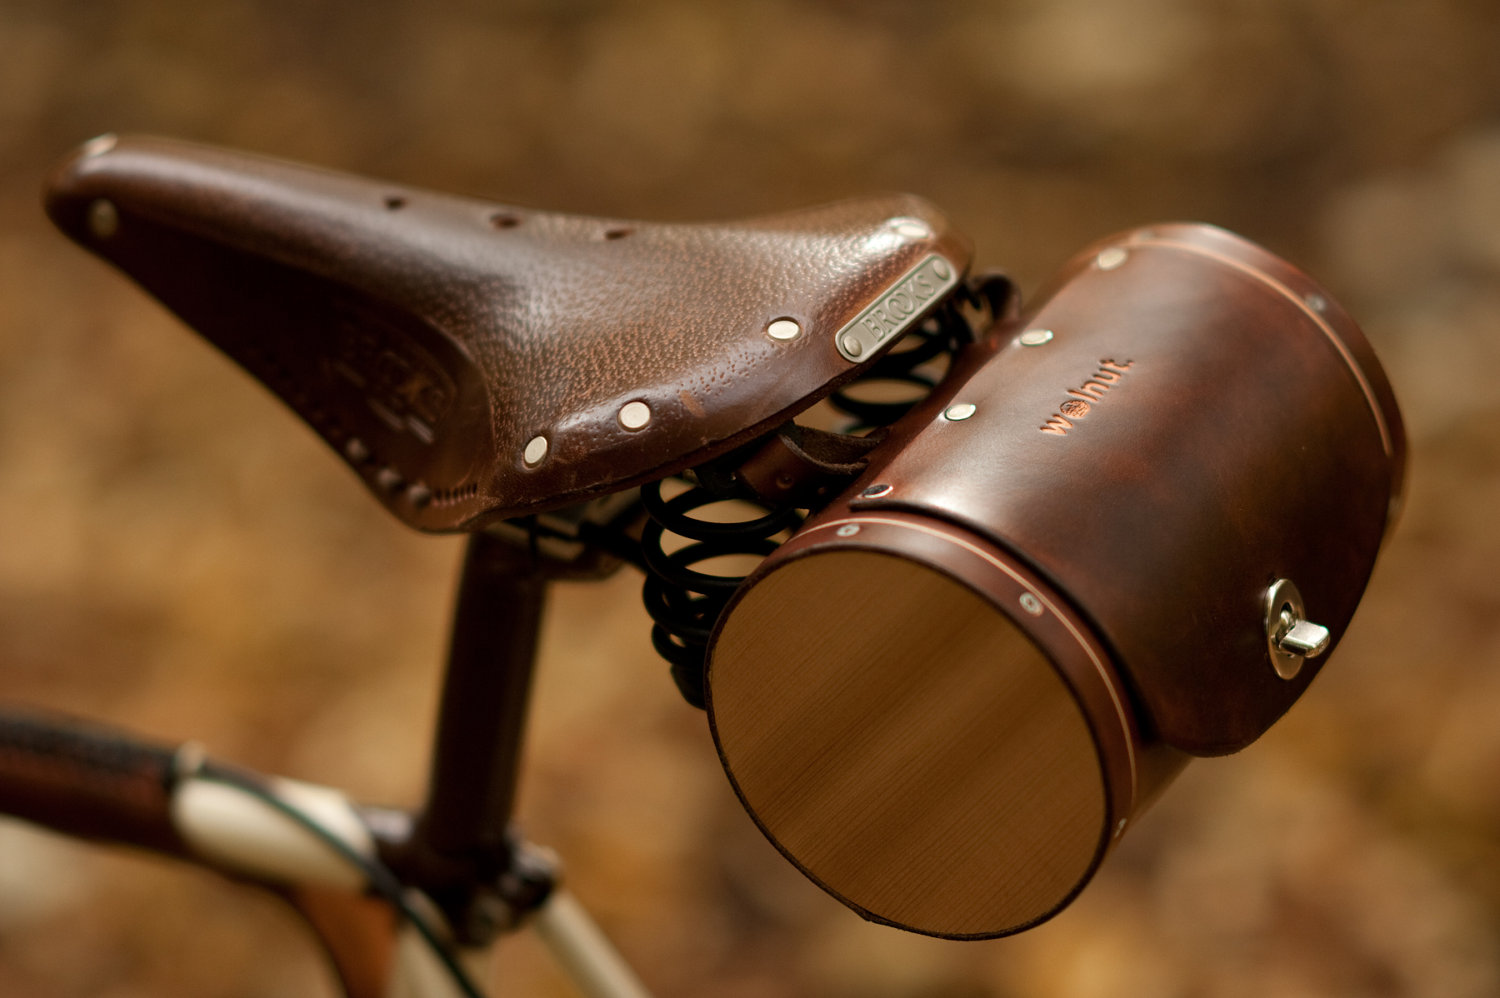 bicycle_seat_barrel_01